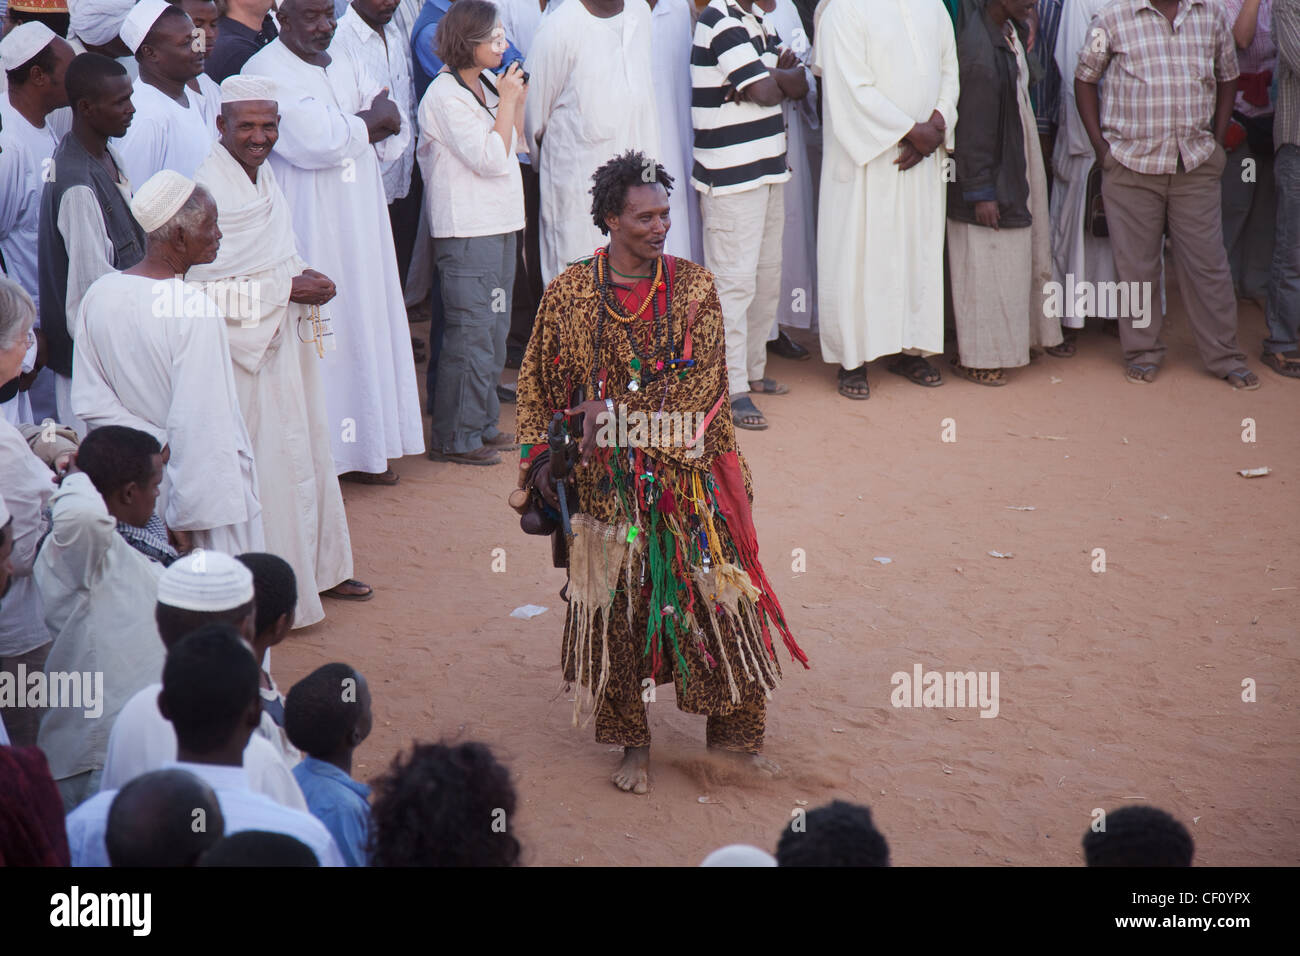 Sudan, Khartoum, Omdoman, Local man dressed in costume at Whirling Dervishes, ceremony from Mevlevi Order - Stock Image